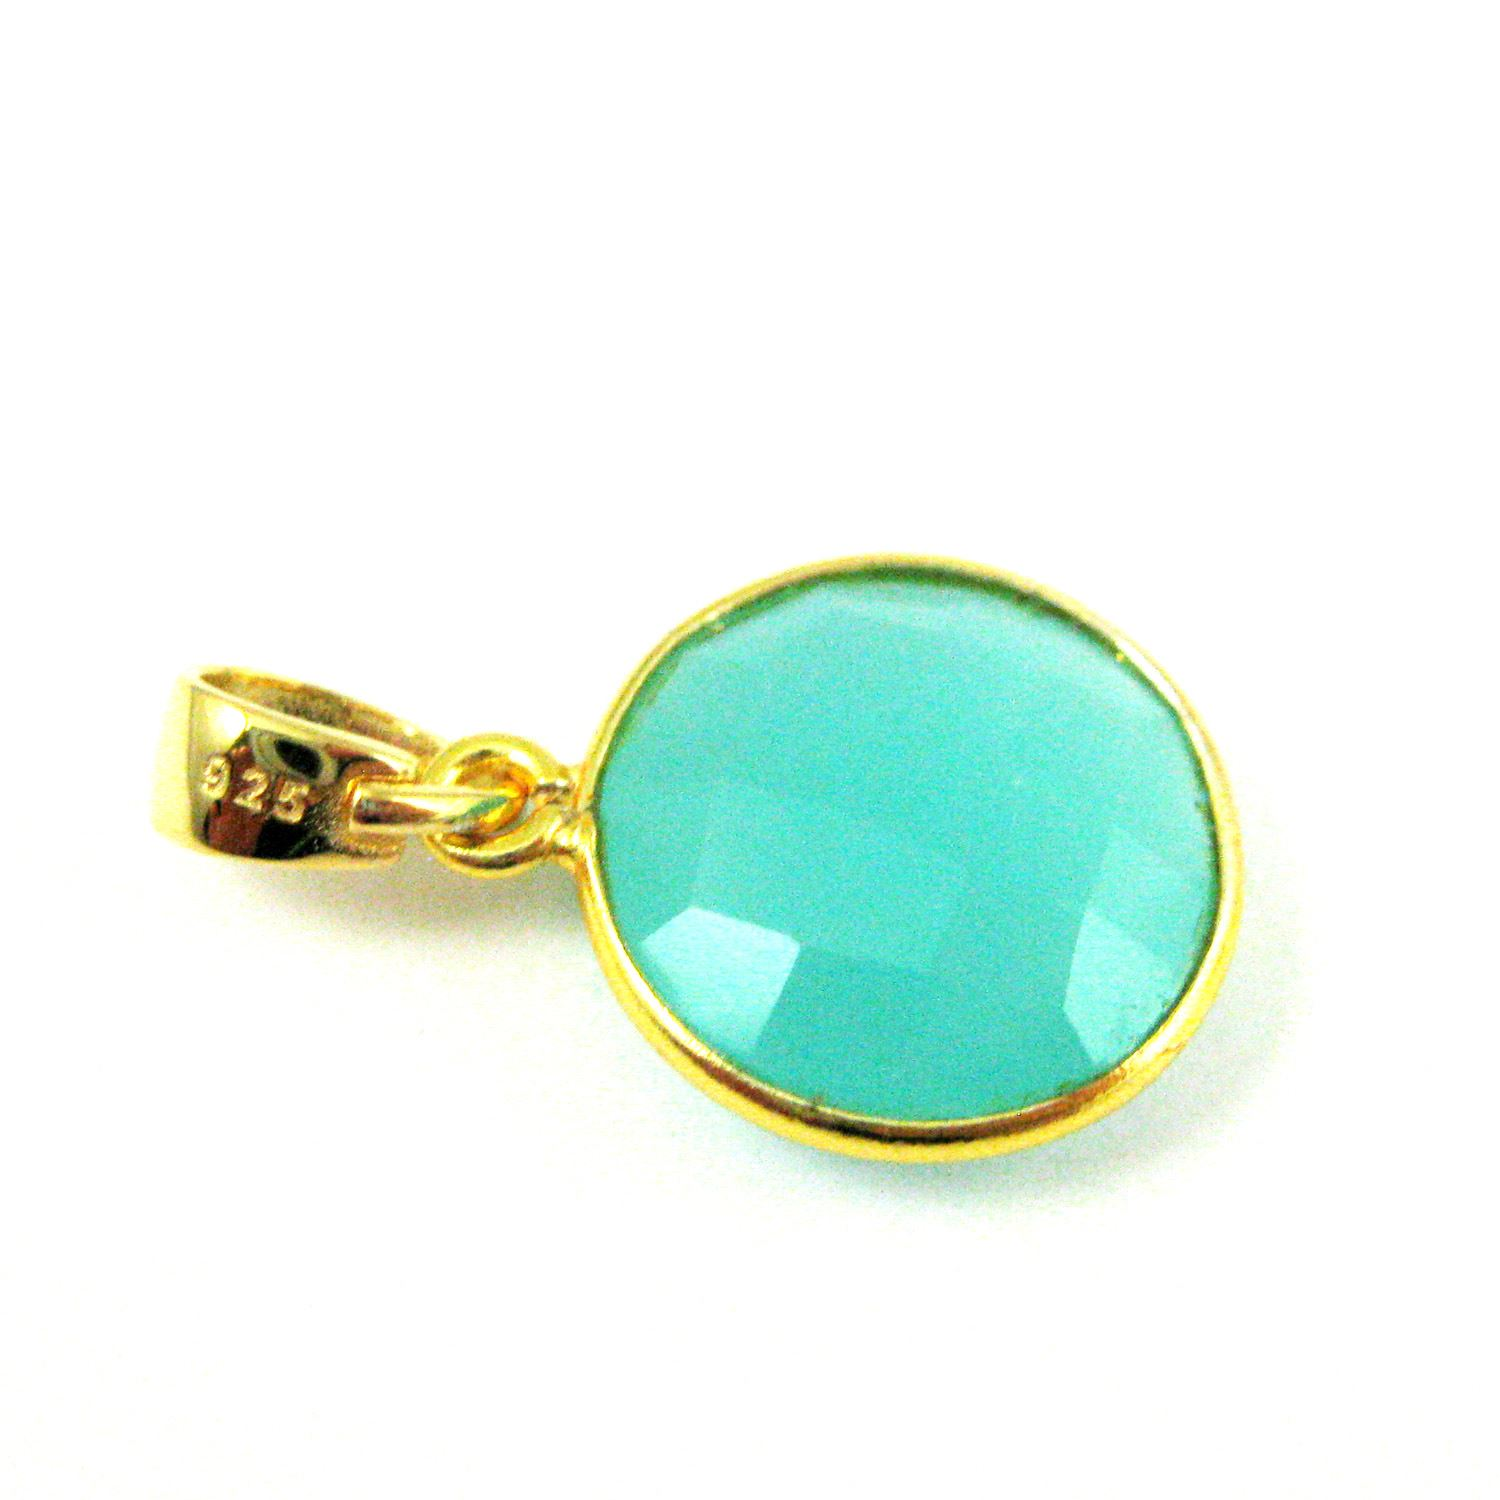 Bezel Gemstone Pendant with Bail - Gold plated Sterling Silver Round Gem Pendant - Ready for Necklace - 24mm- Peru Chalcedony